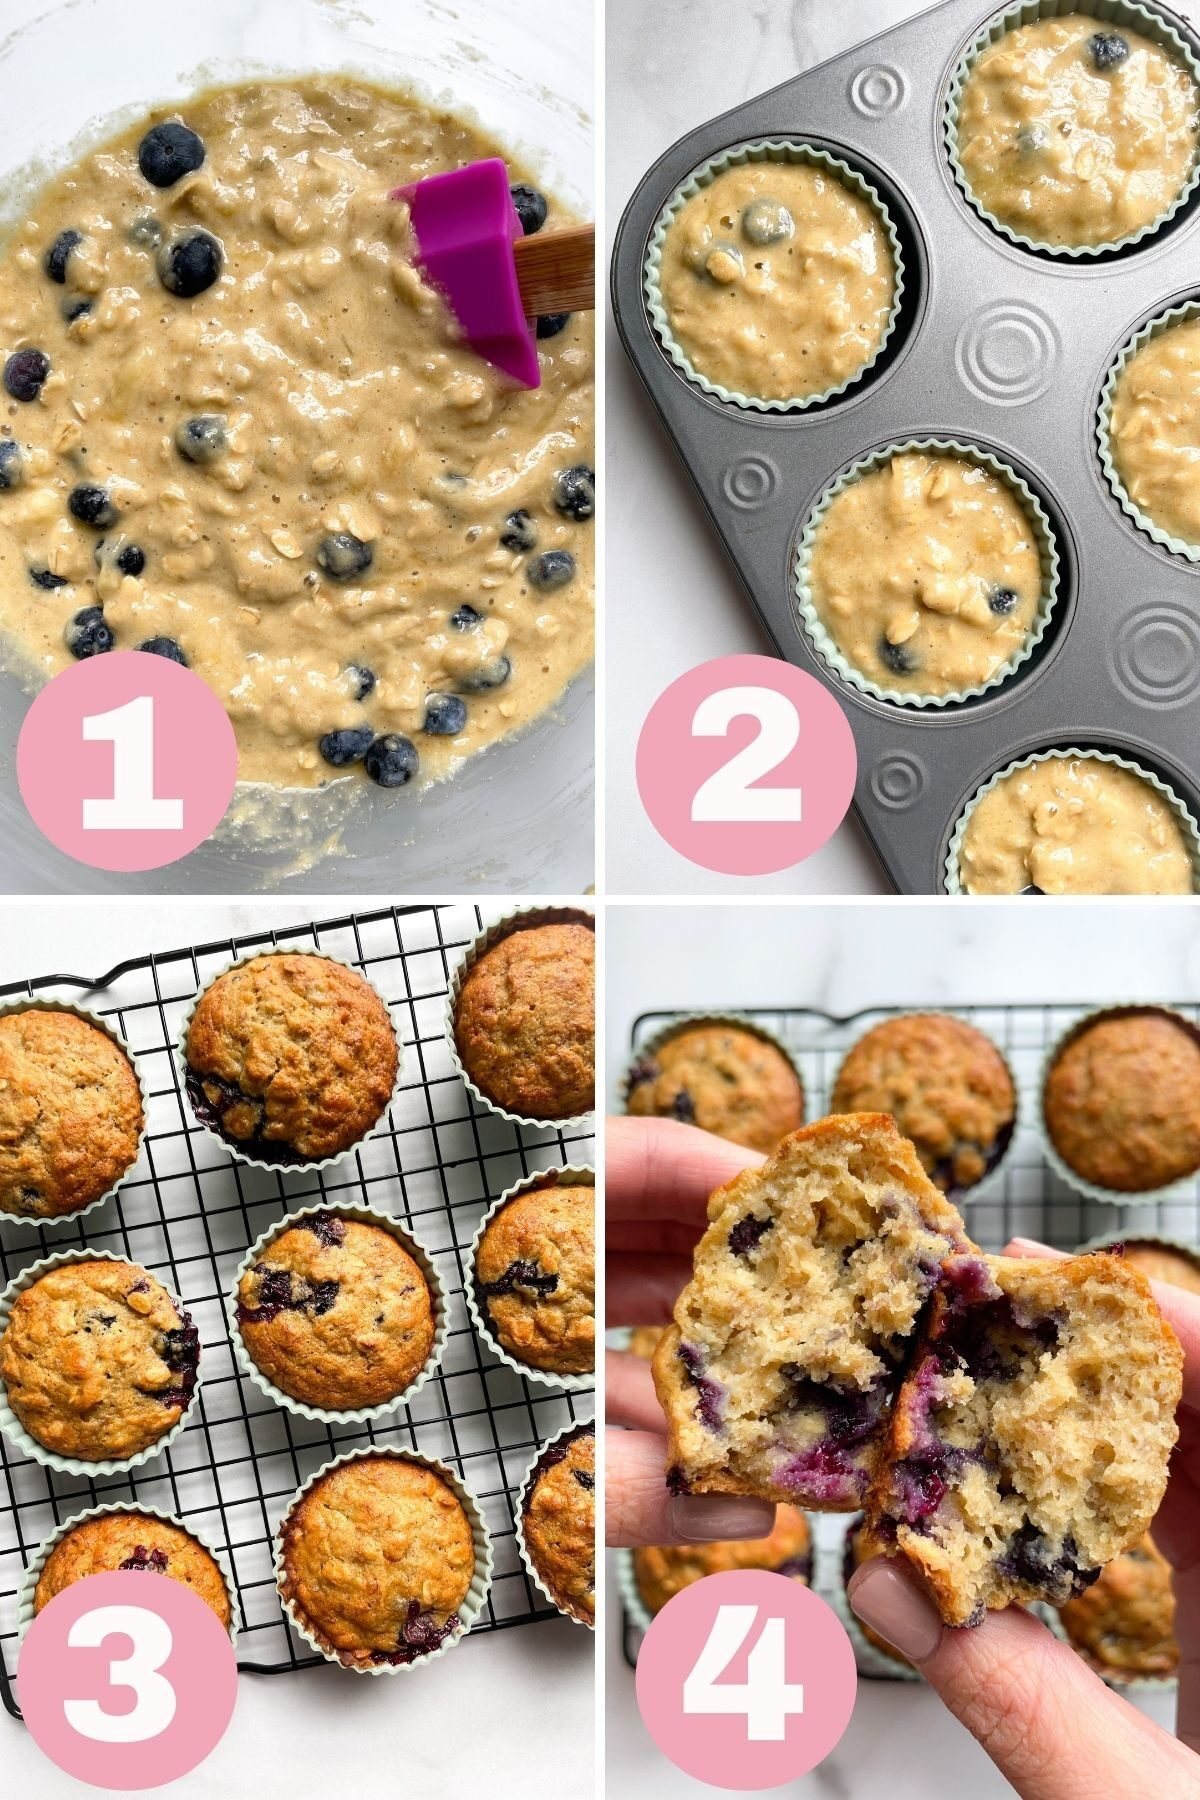 4 step how to make banana blueberry oat muffins